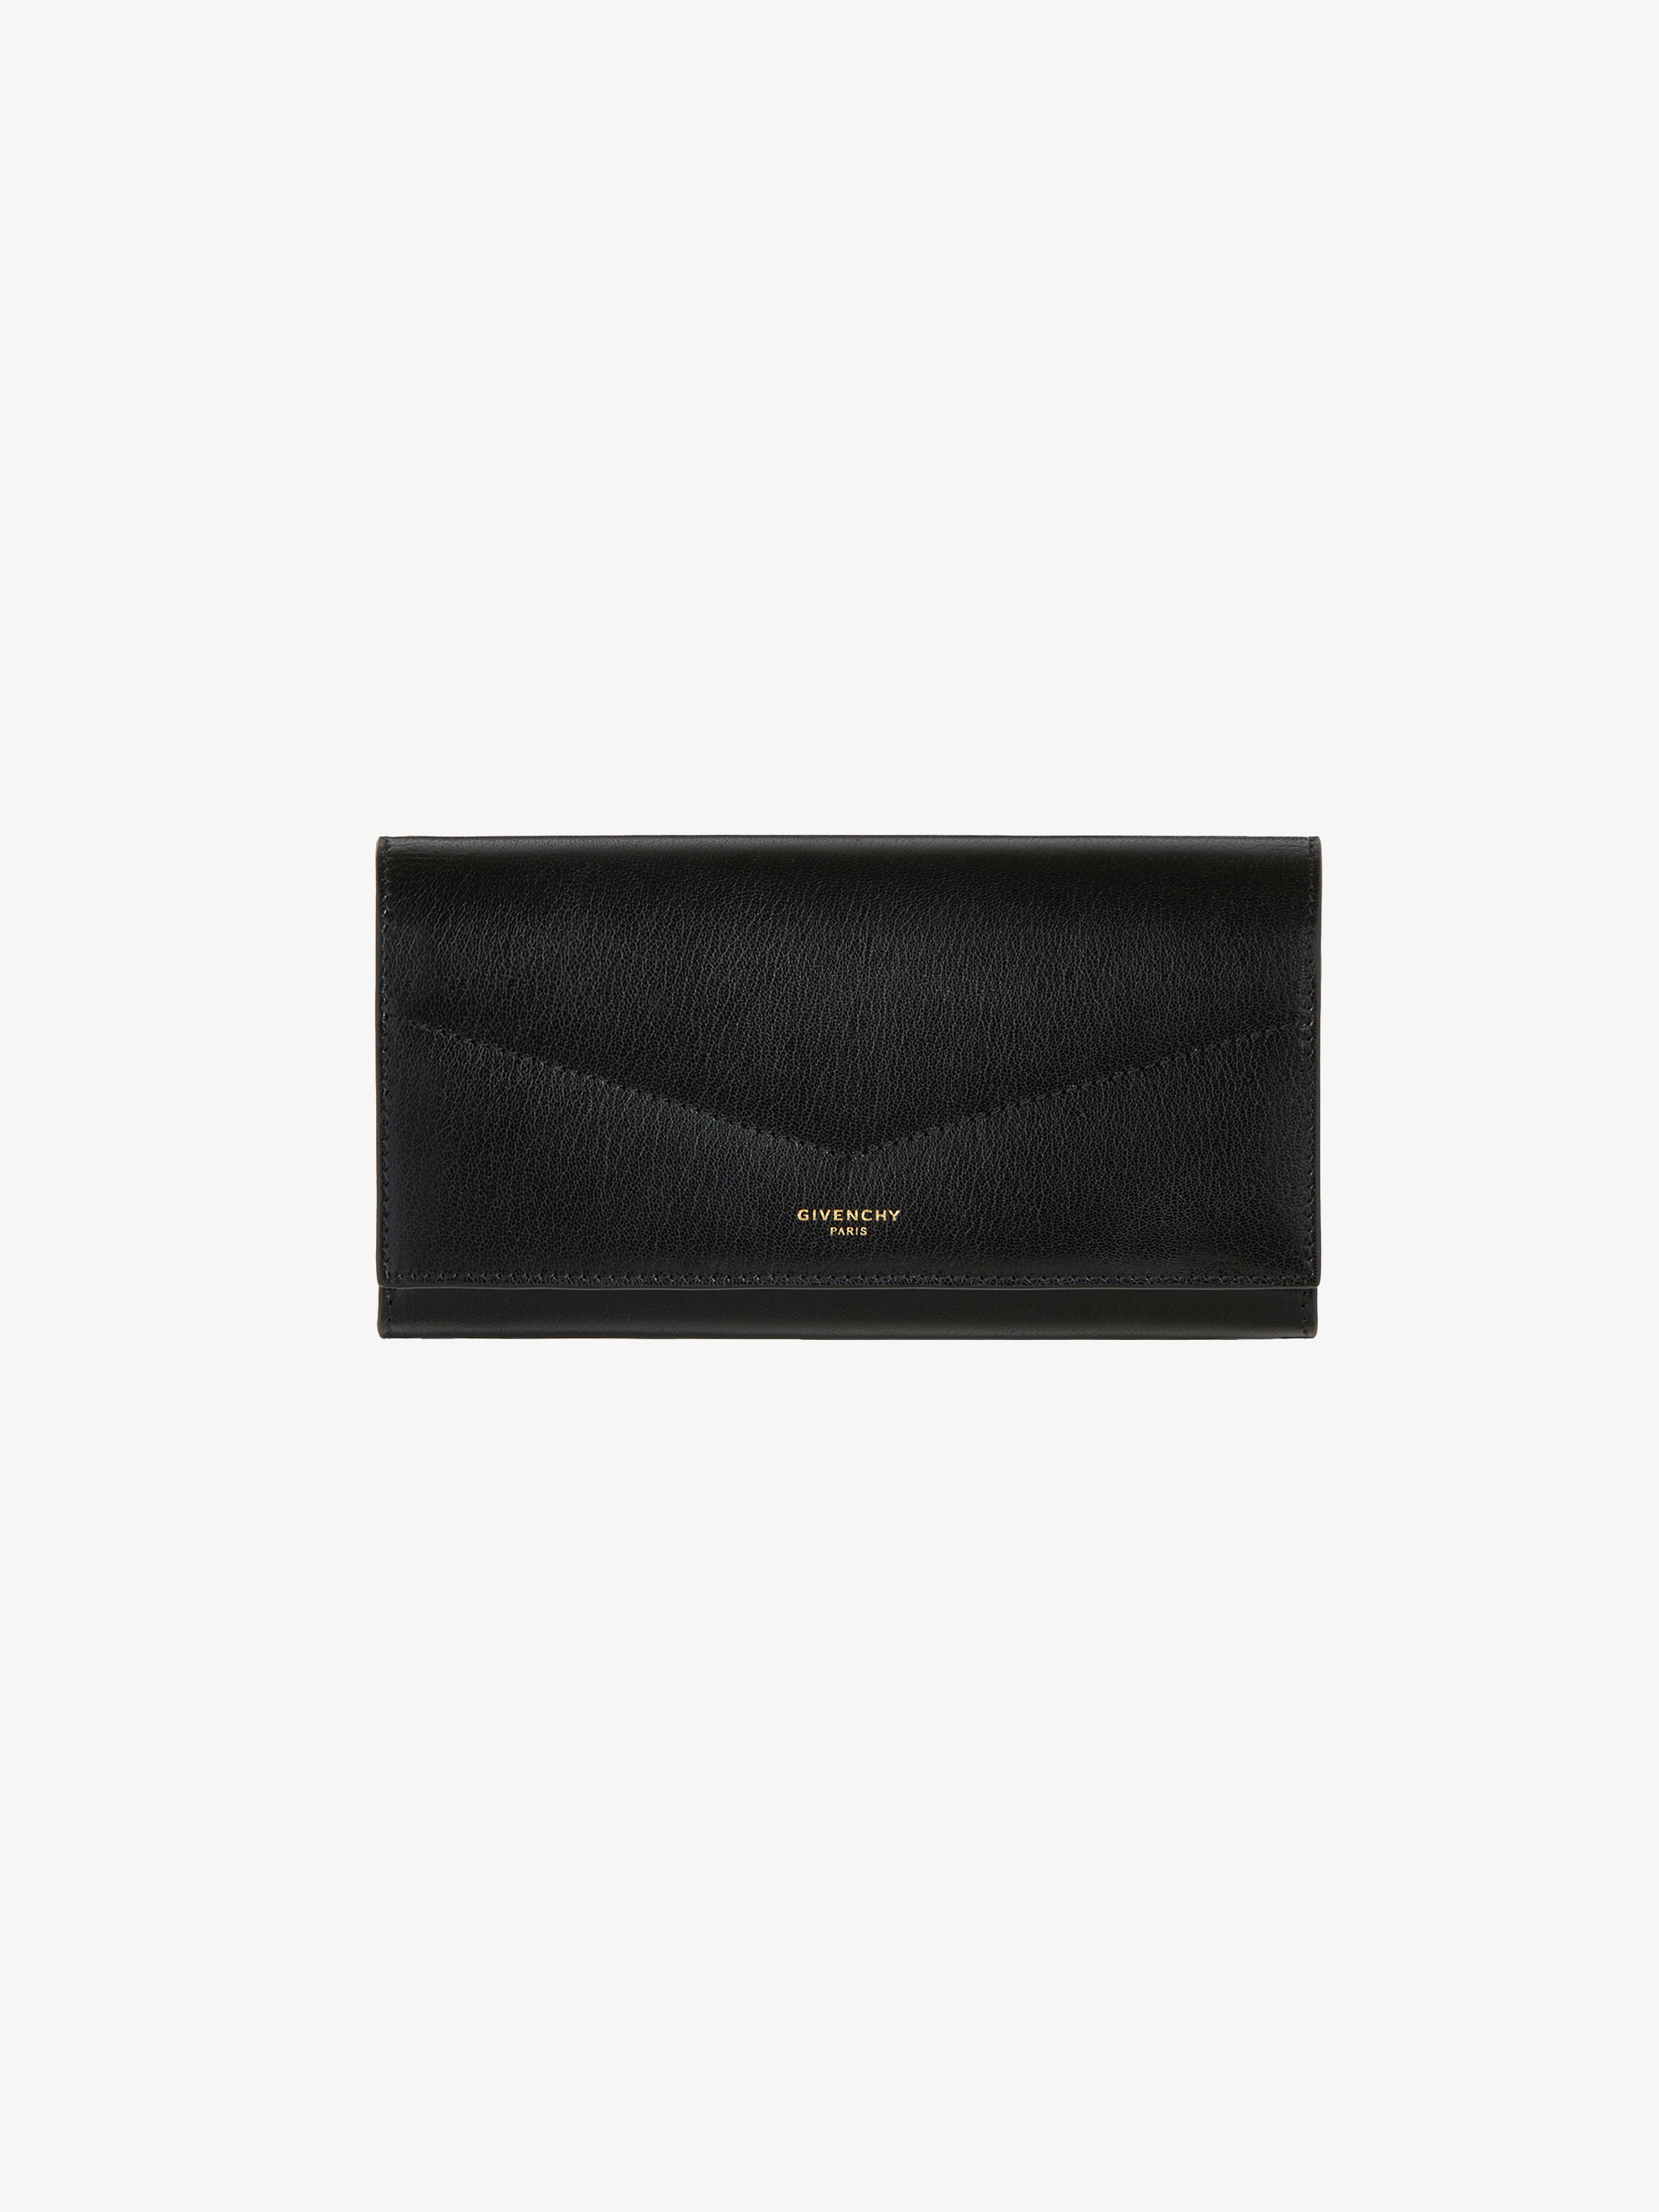 Long flap wallet in leather